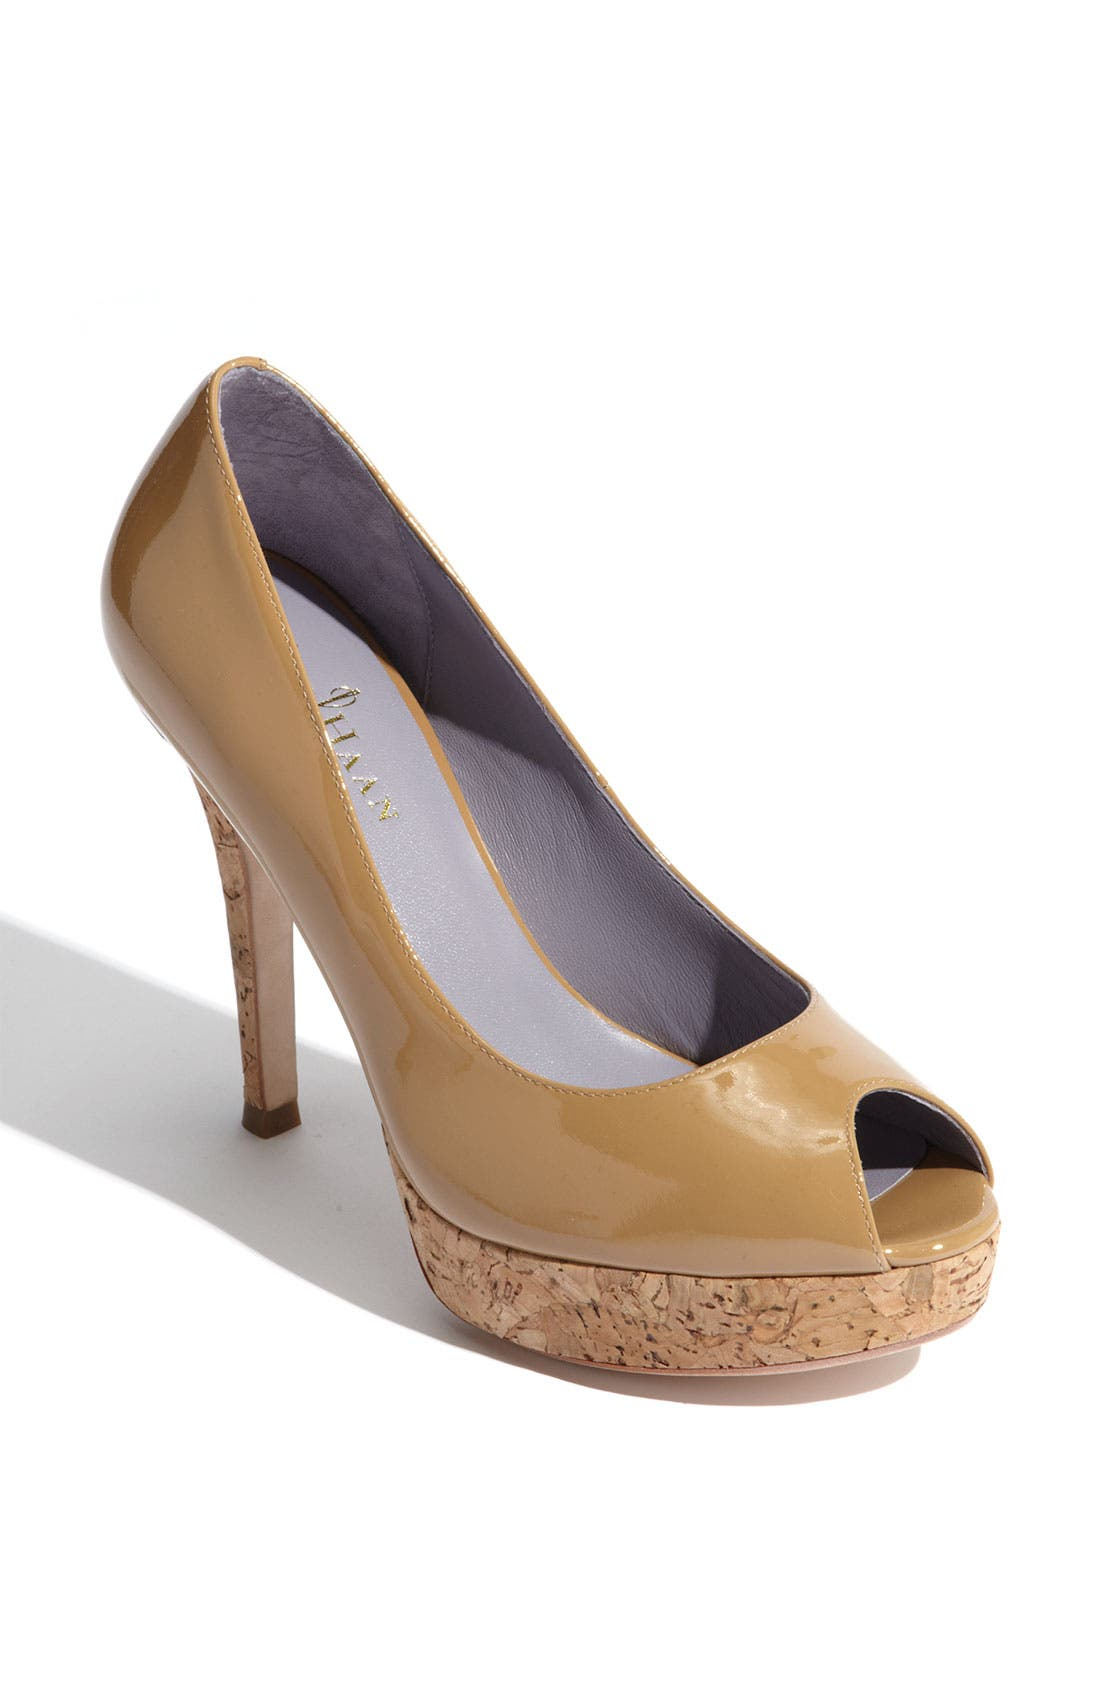 Main Image - Cole Haan 'Air Mariela' Pump